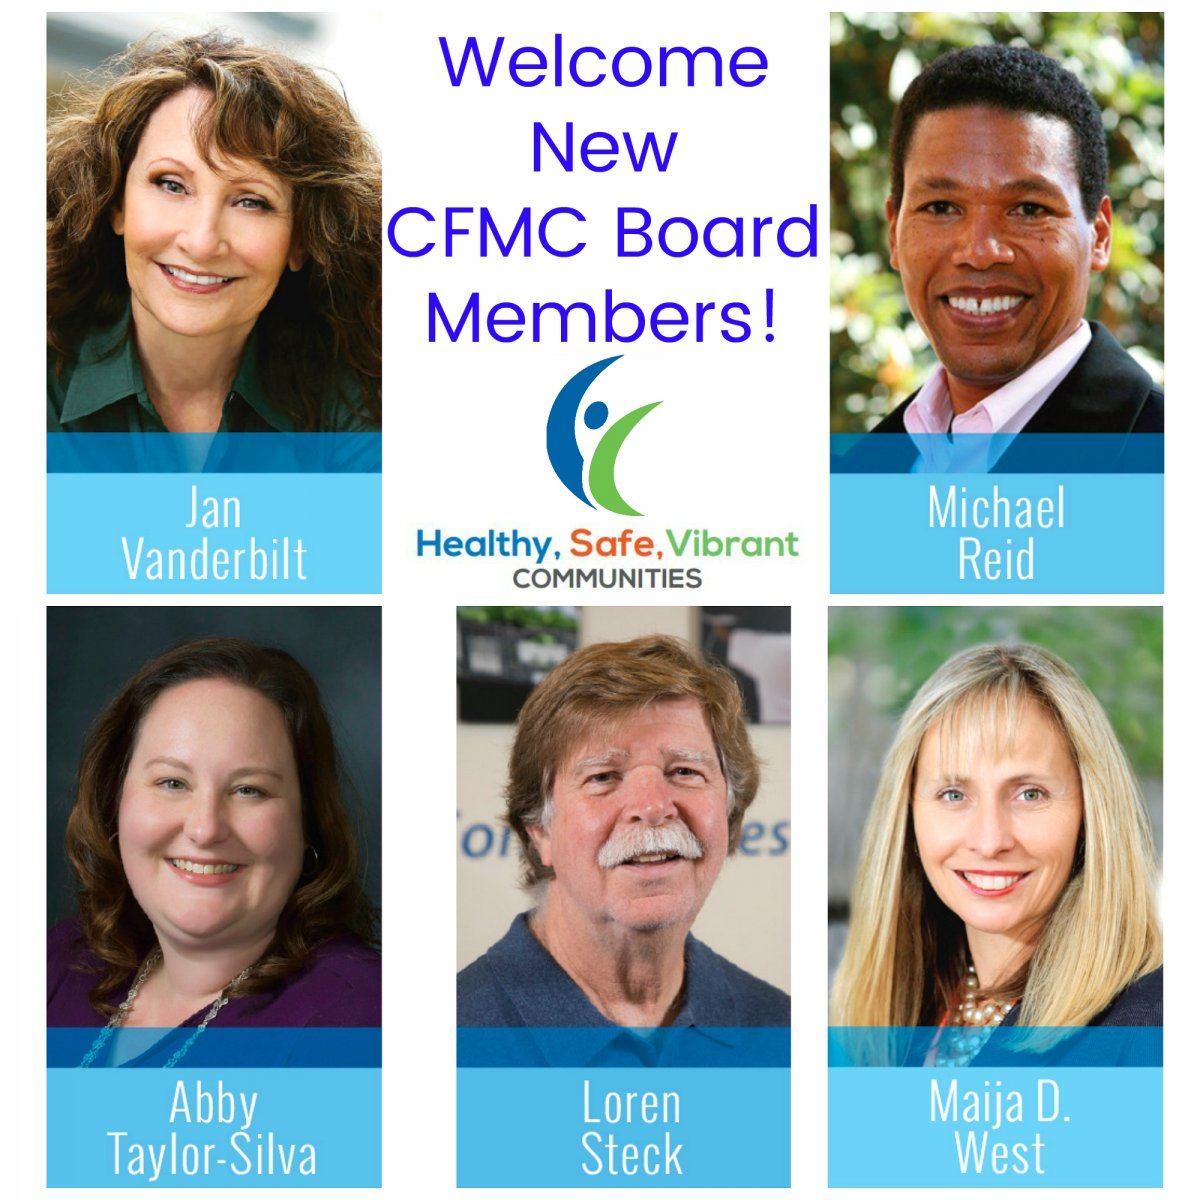 CFMC Welcomes New Board Members - The Community Foundation ...